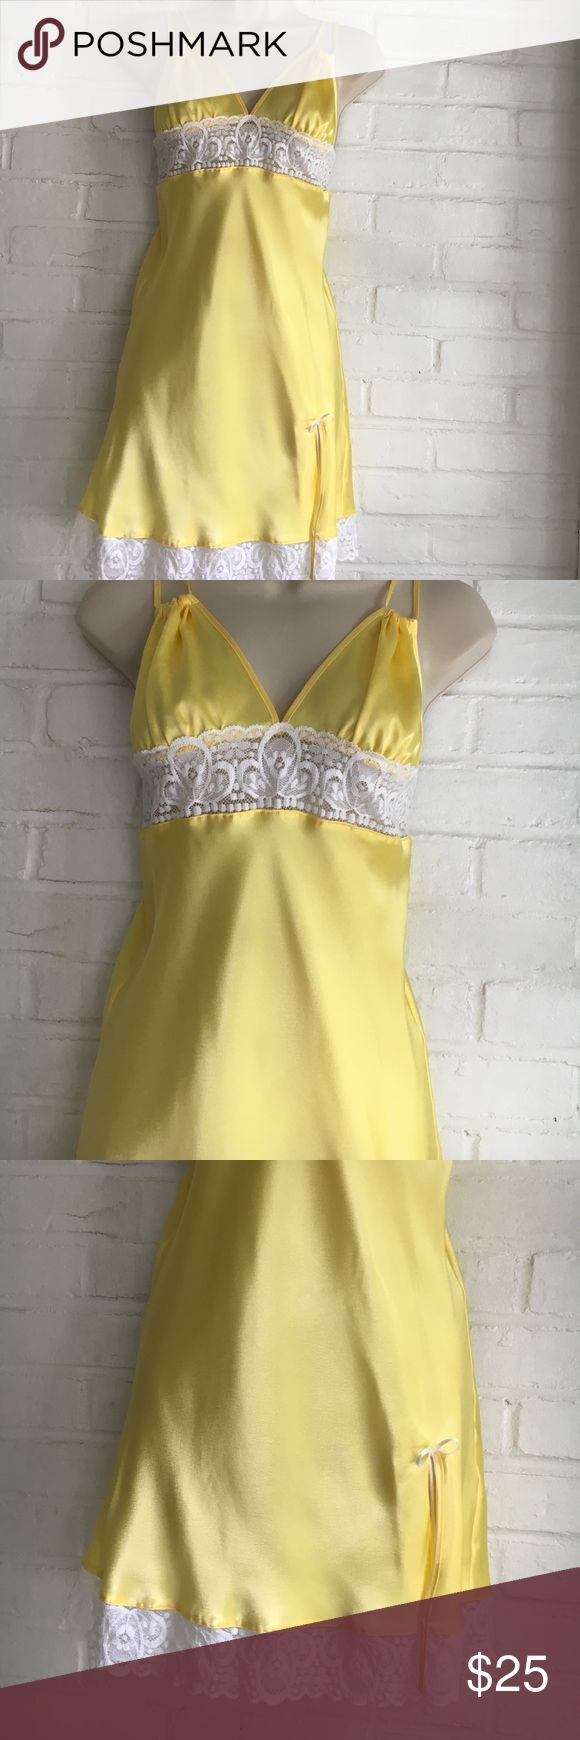 "Yellow Satin Nighty NWT Pretty yellow satin nighty trimmed with white lace at the empire waist and surrounding the bottom of nighty. With a sexy little split in the front, the material is 100% polyester. The sizes are as follows: SMALL-bust size lying flat approx 14"" and the length being 29"" long. LARGE-bust size lying flat approx 16"" and the length being 31"" Long. NWT Intimates & Sleepwear"